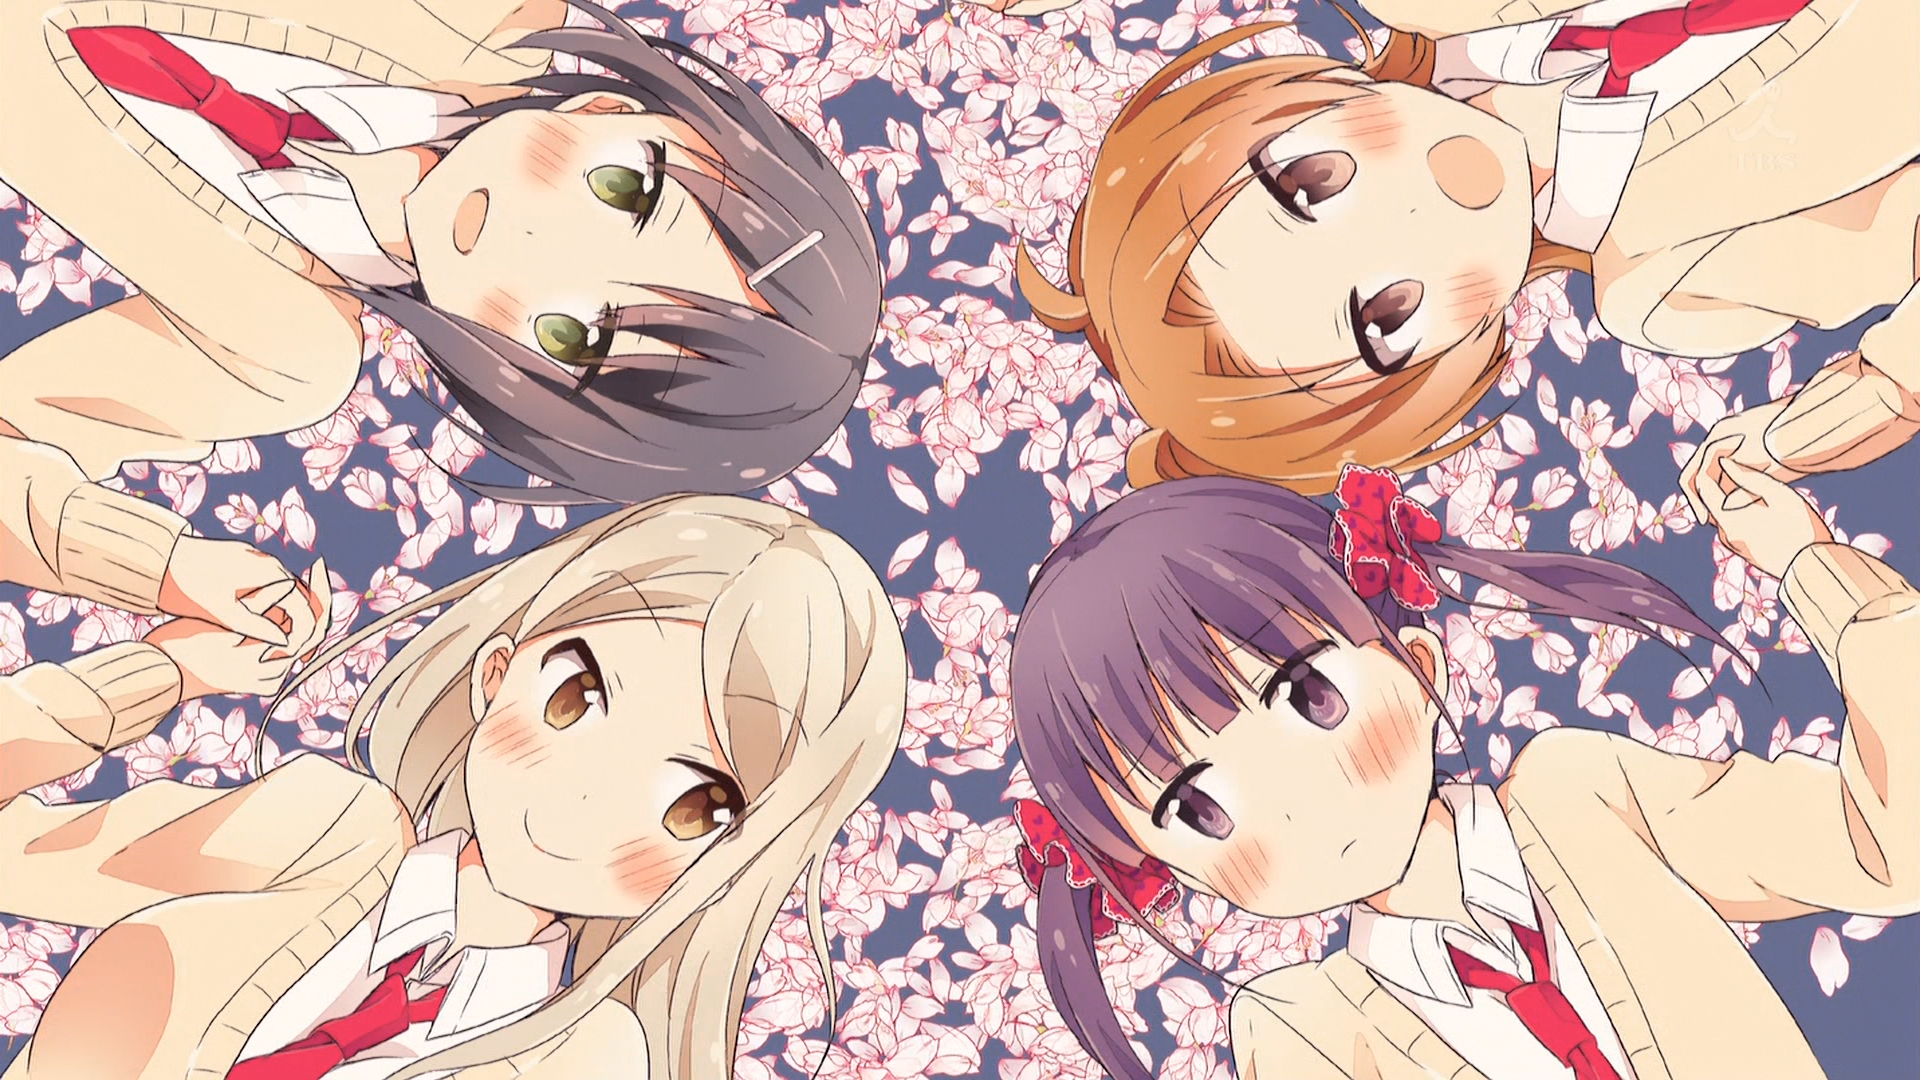 Kotone x Kaede, Shizuku x Yuzu holding hands on a blue background with sakura petals scattered on it.